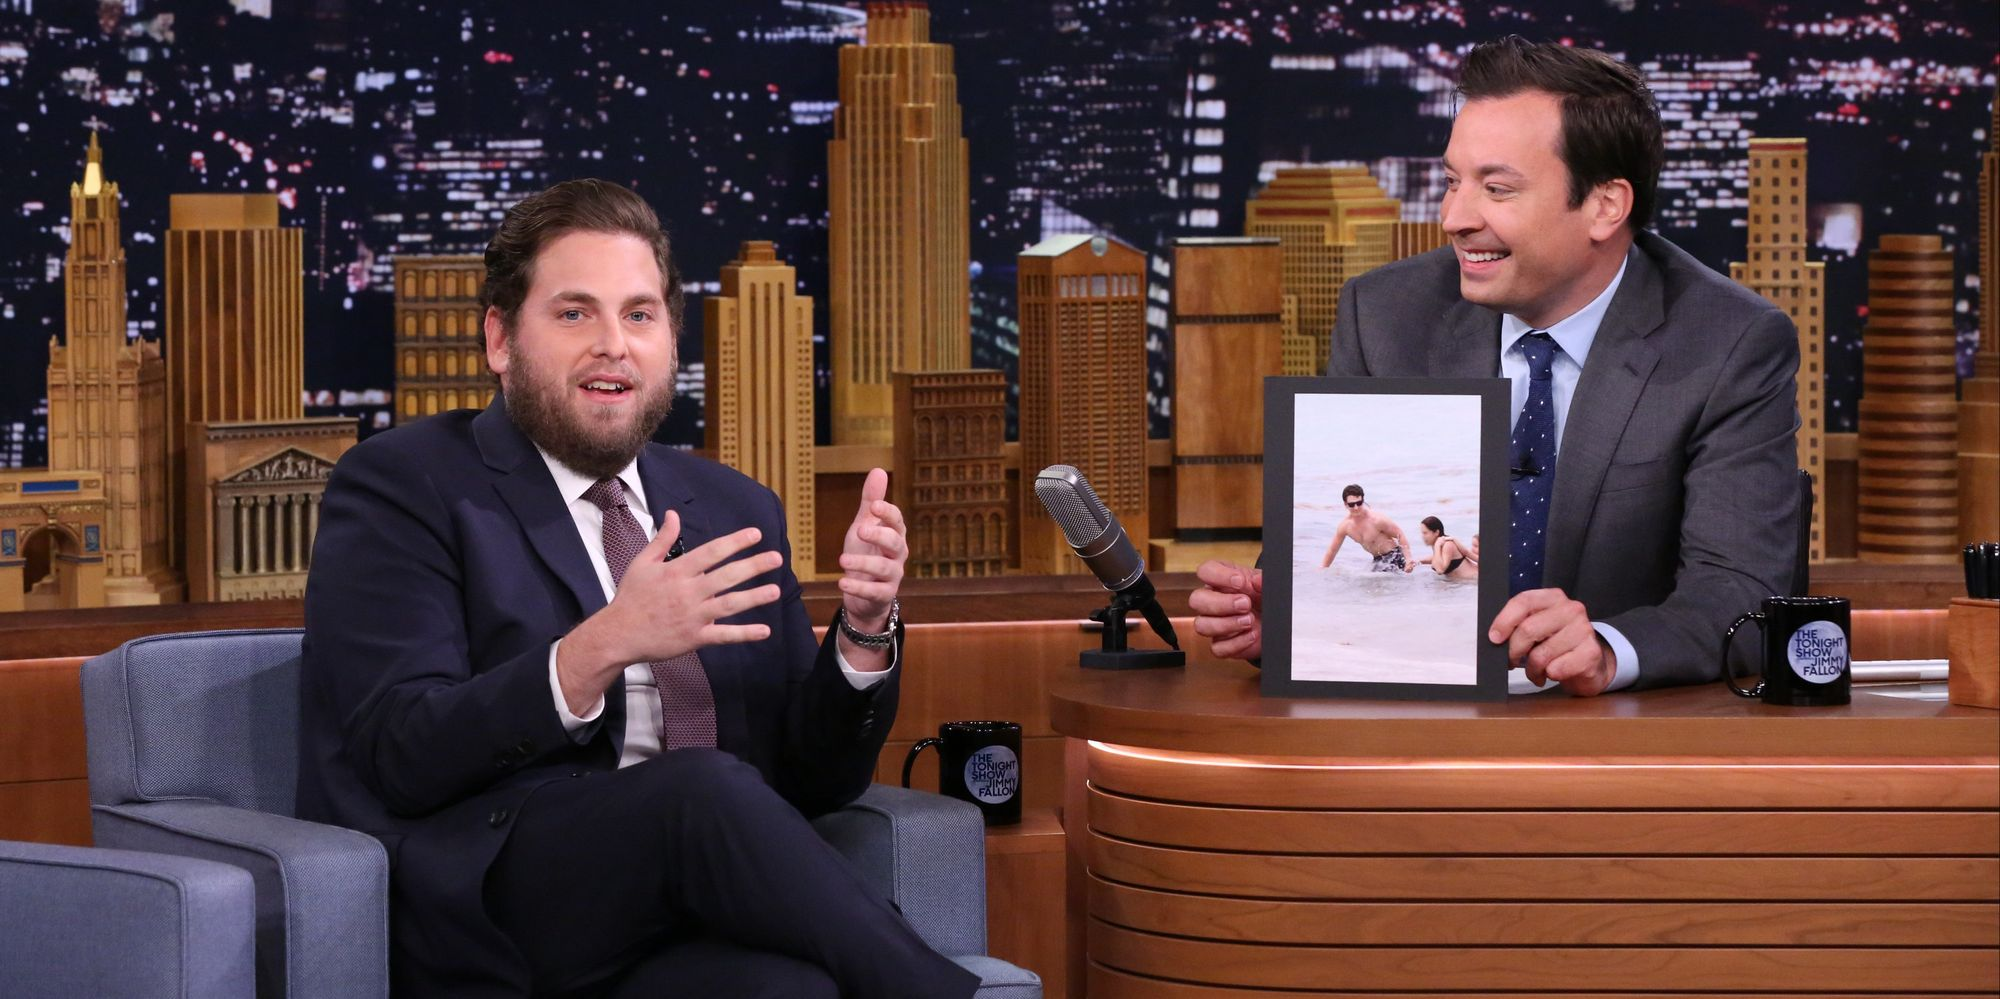 That Time Jonah Hill Accidentally Emailed His Food Diary To Drake